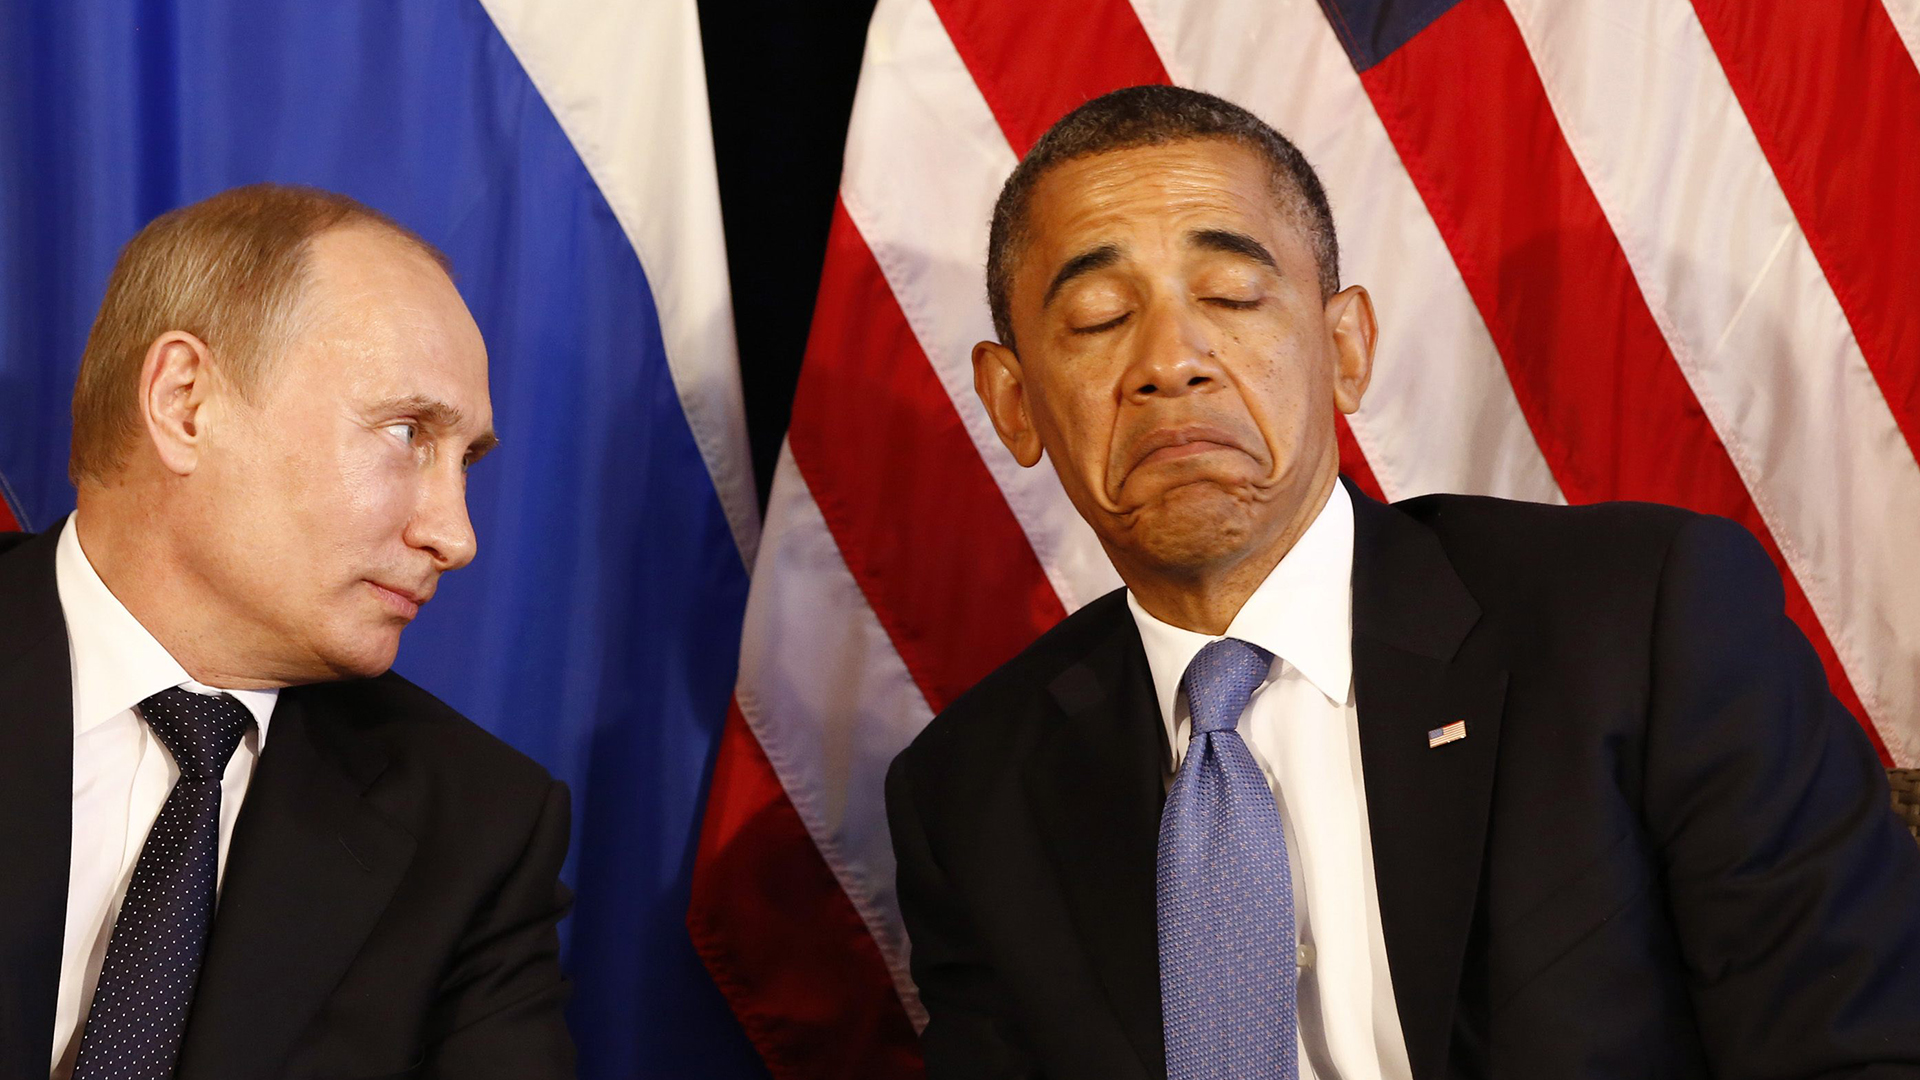 http://media2.s-nbcnews.com/i/MSNBC/Components/Video/130808/f_obama_putin2_130808.jpg